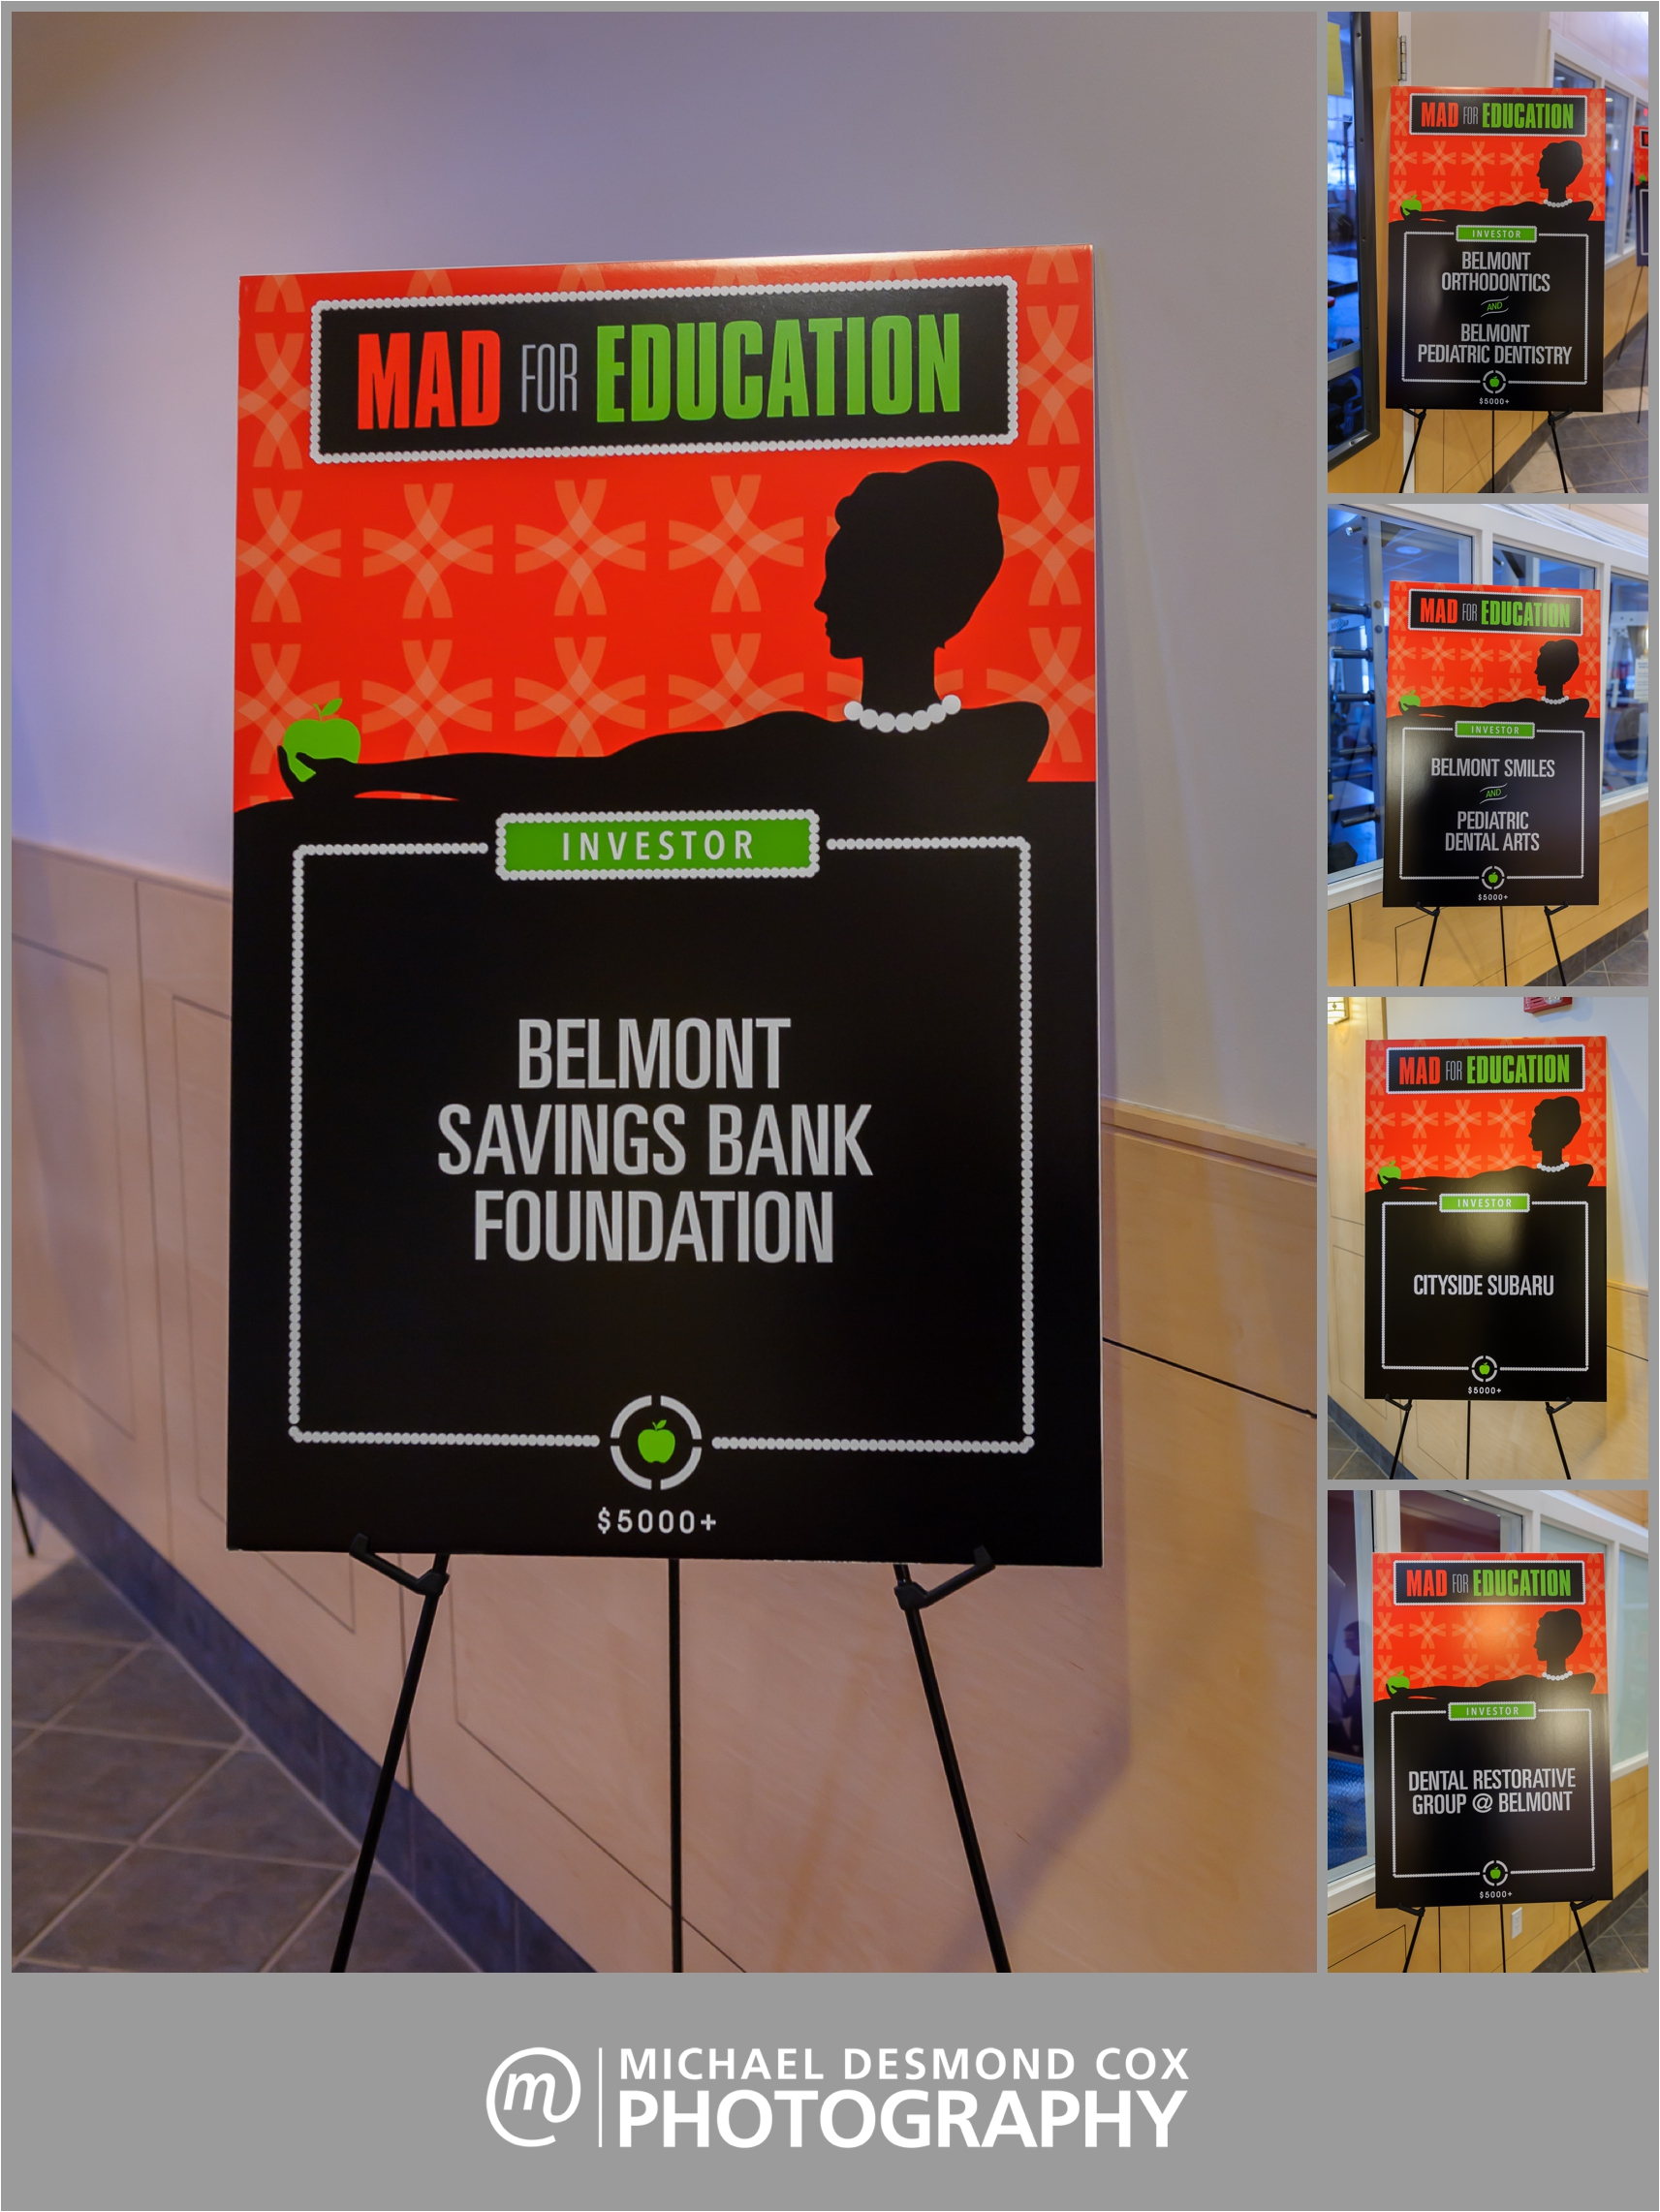 Foundation-Belmont-Education-Mad-for-Education-Fundraising